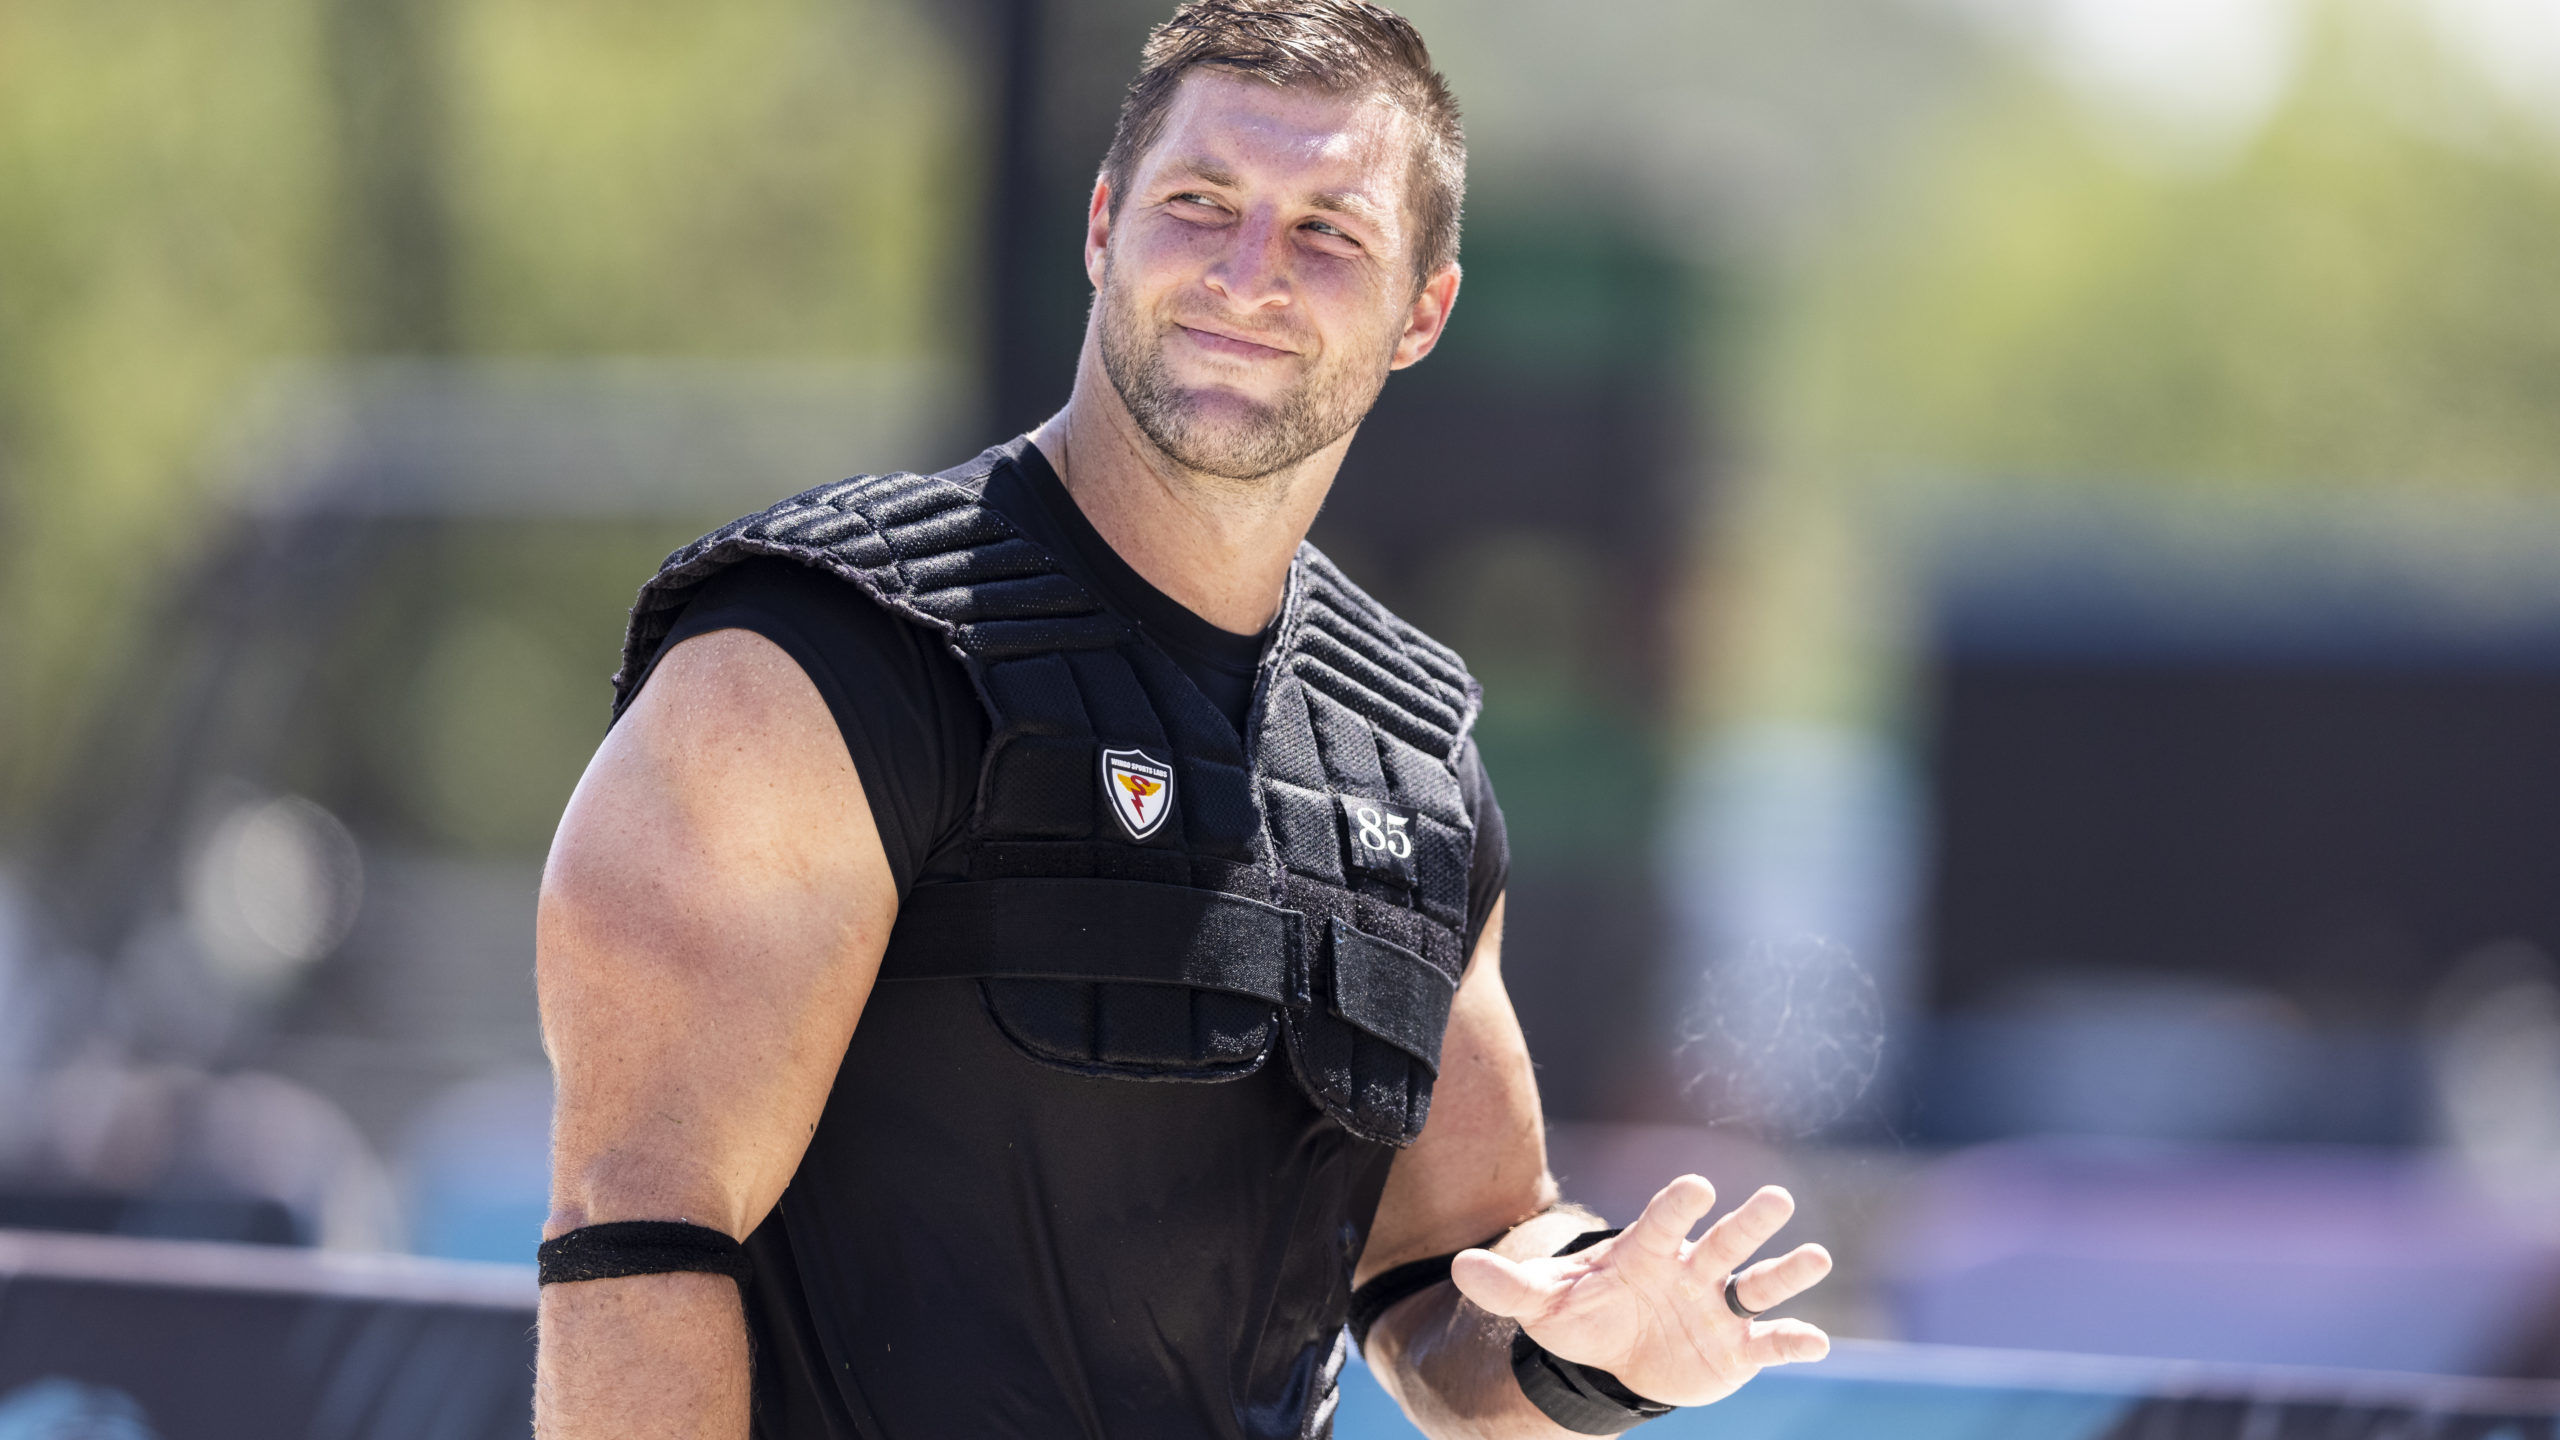 Tim Tebow Hanging Up Cleats